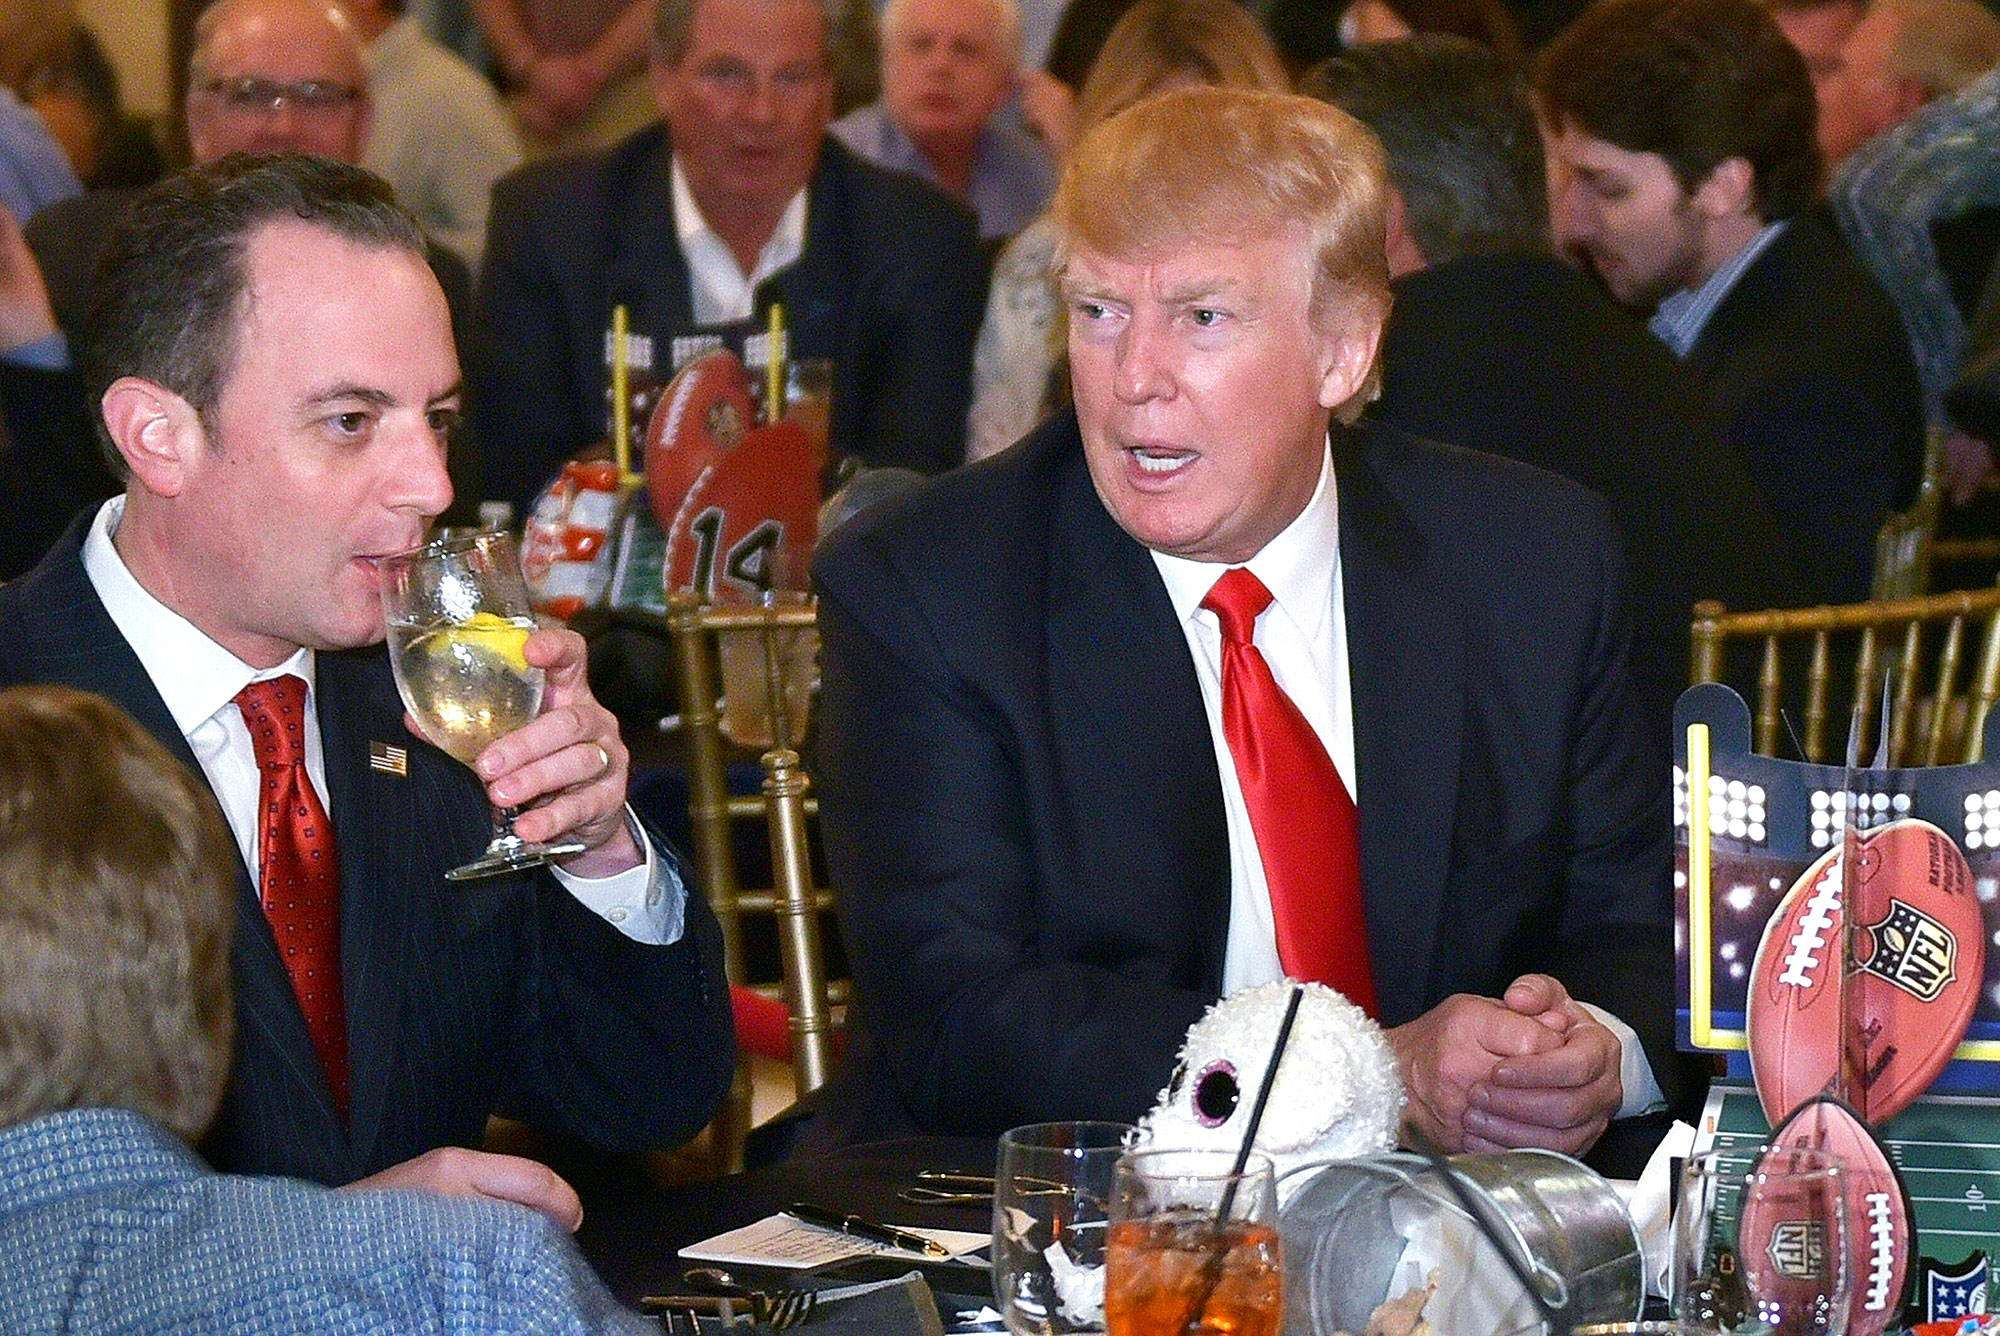 Donald Trump chats with White House Chief of Staff Reince Priebus while watching Super Bowl LI at Trump International Golf Club Palm Beach in West Palm Beach, Florida on February 5, 2017. /